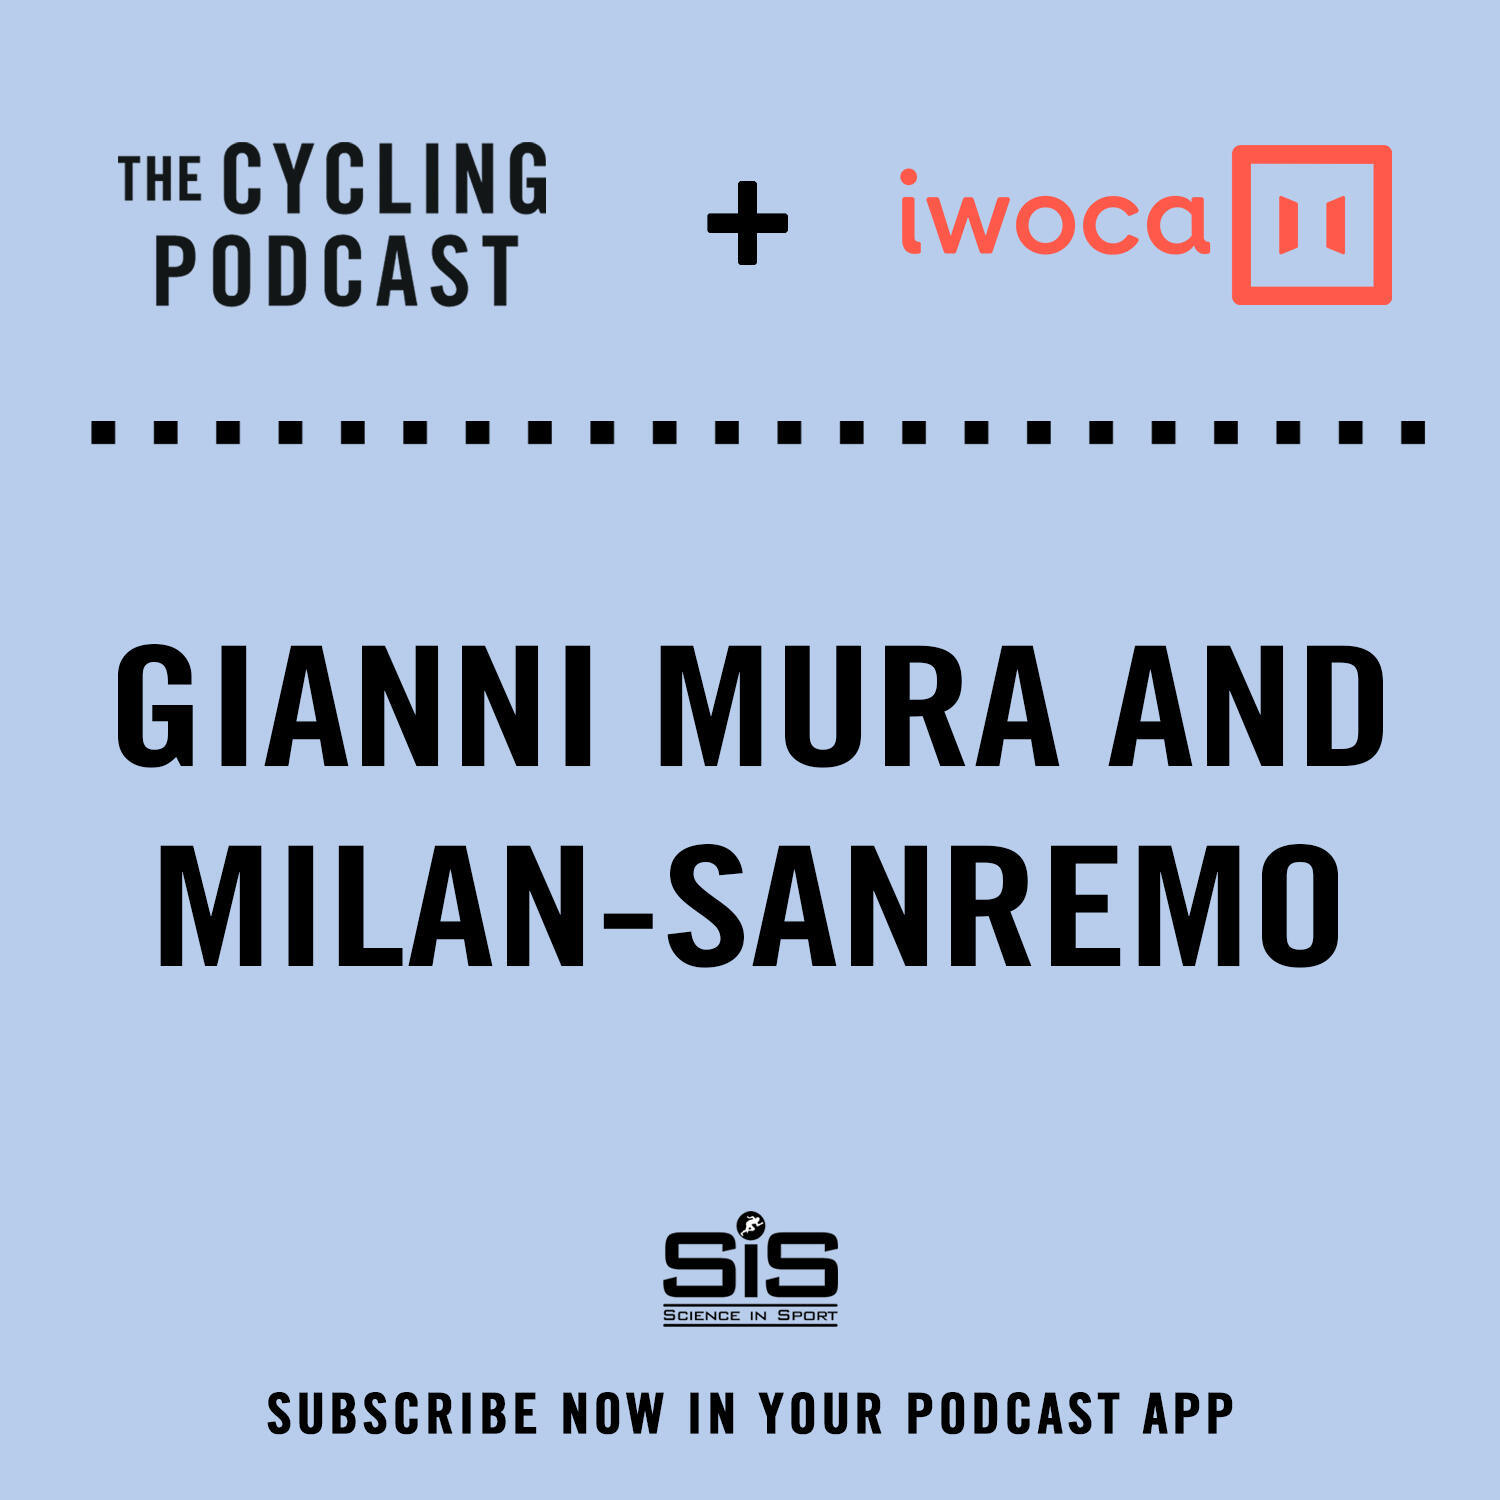 28: Part 1: Gianni Mura and Milan-Sanremo